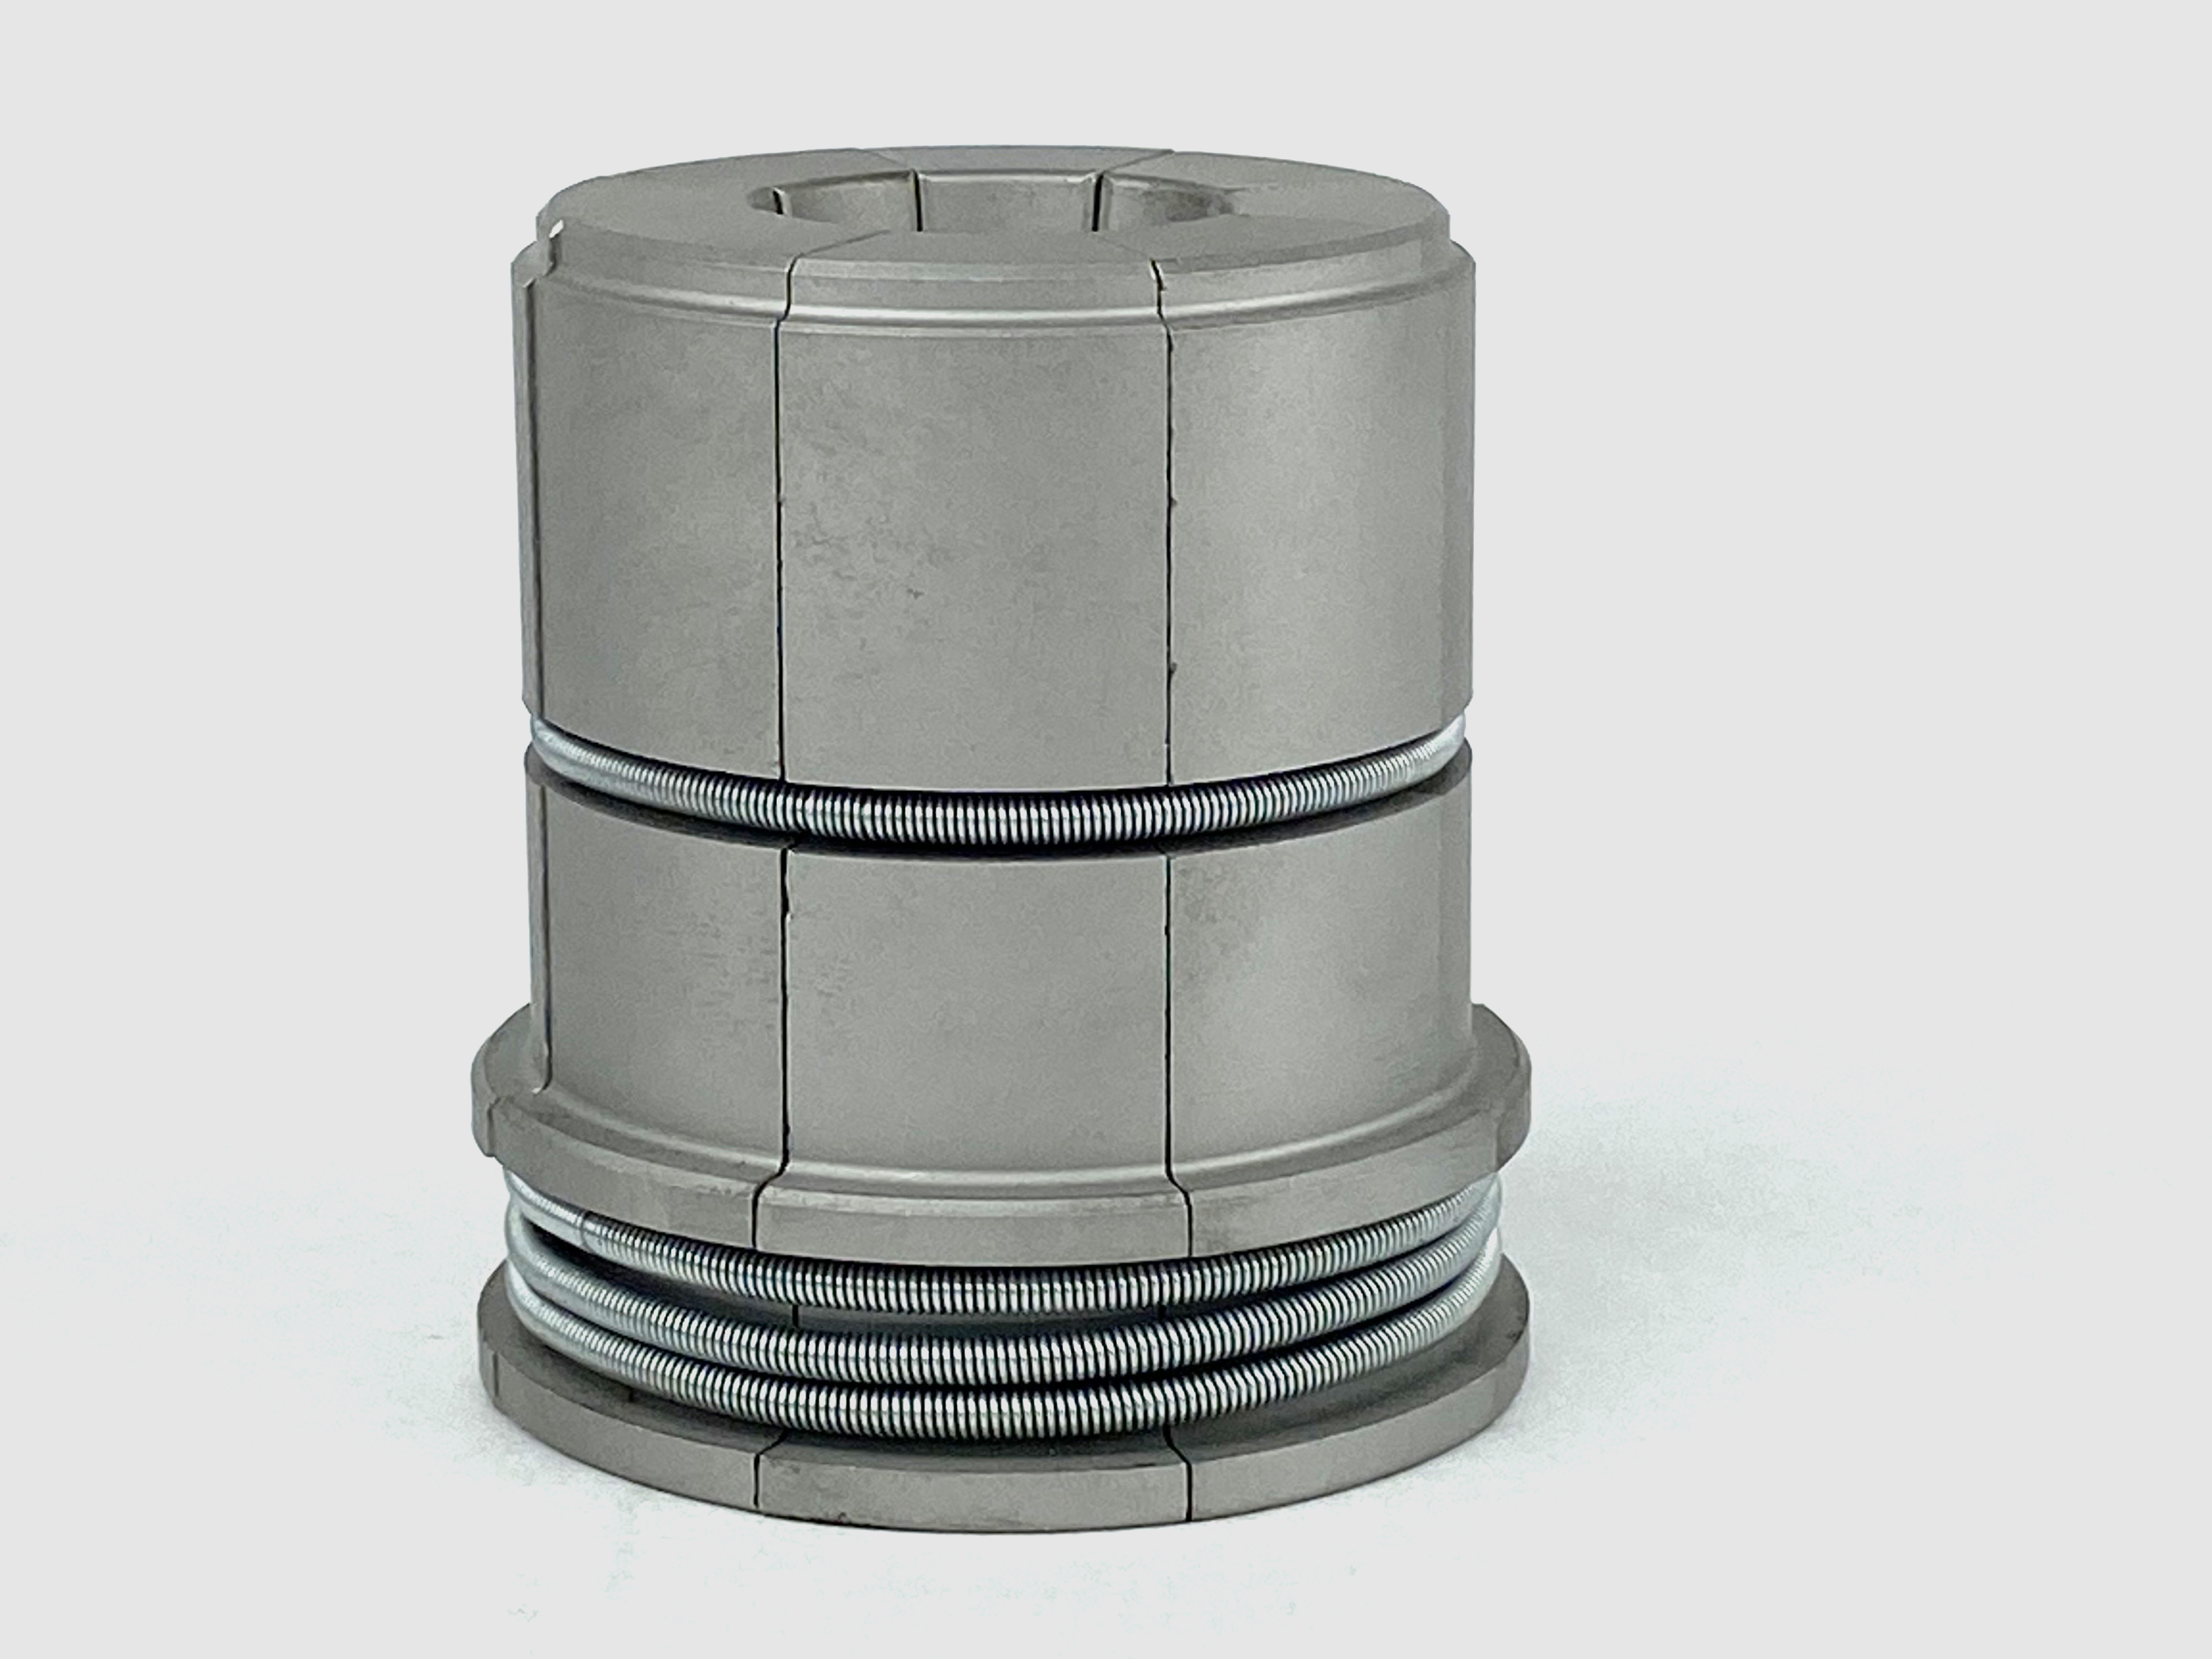 Direct Fit Segment Sets For Use On BendPak Machines